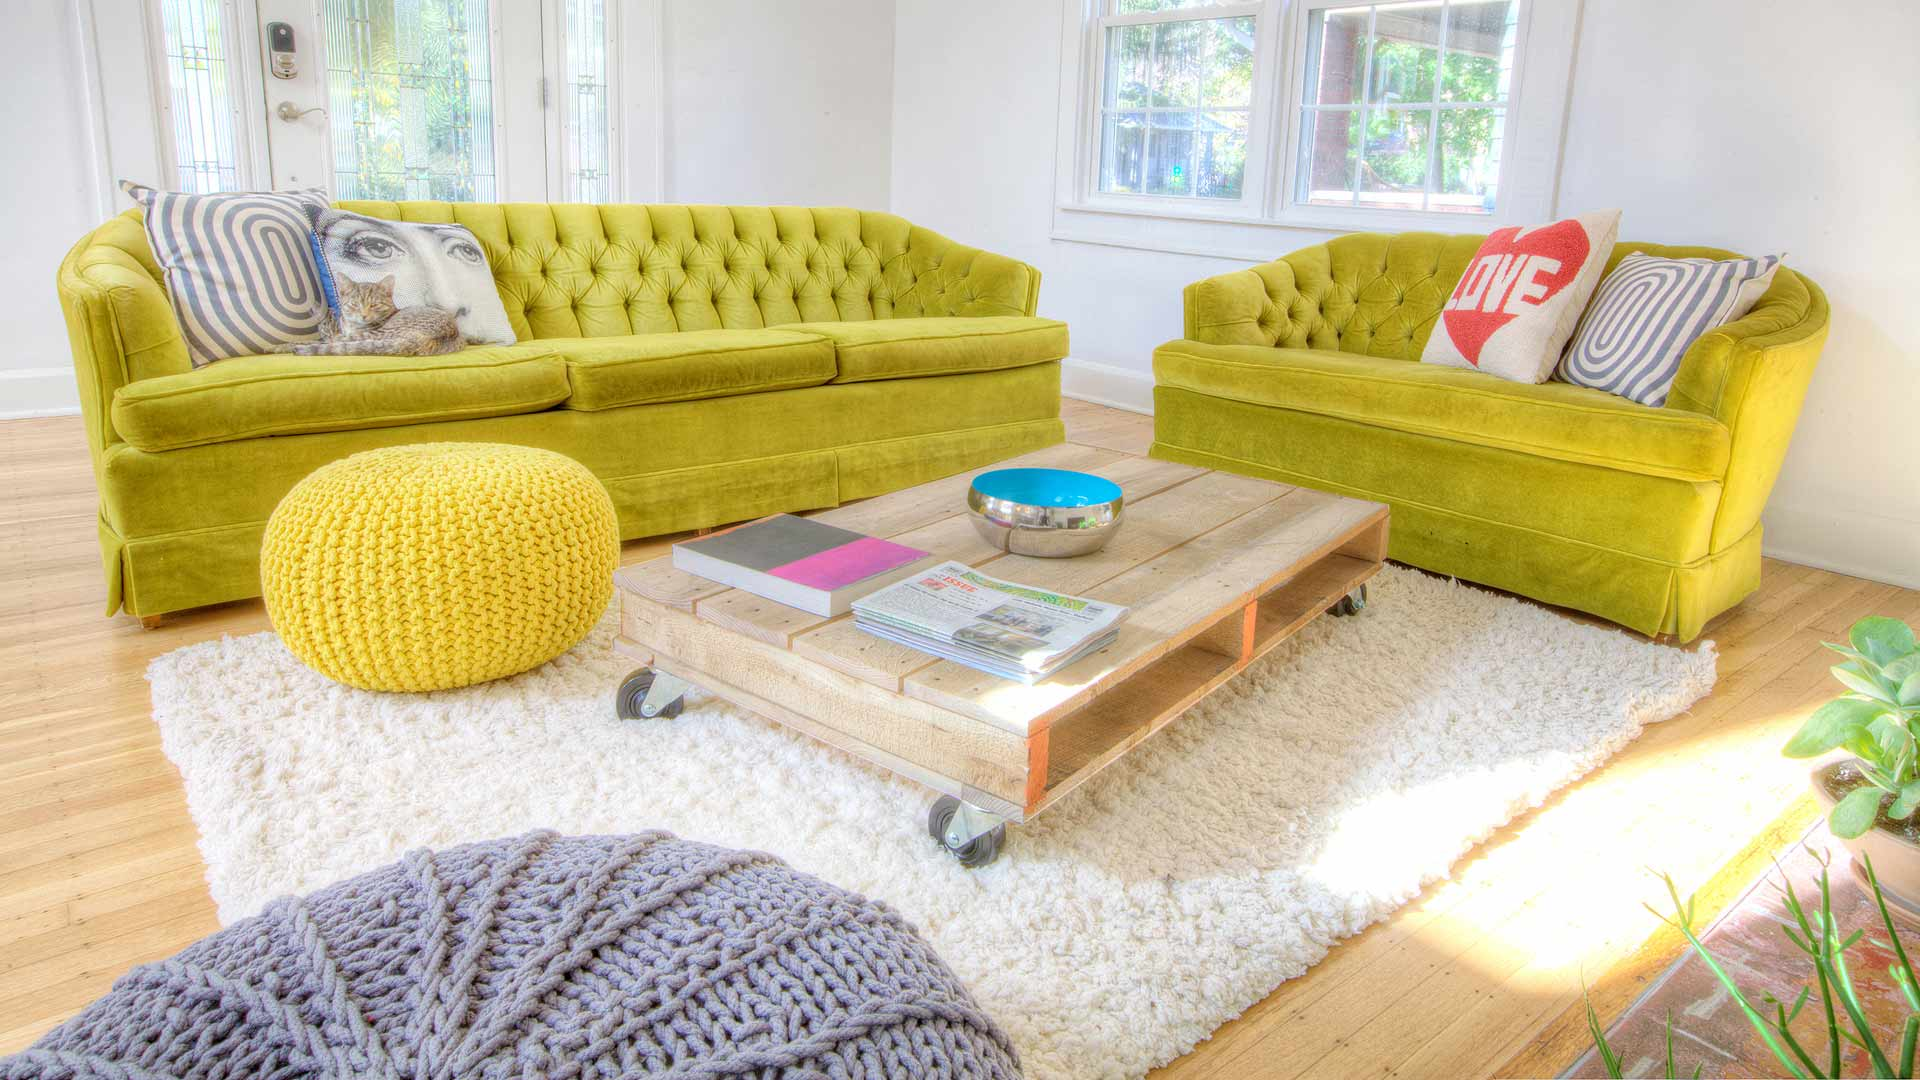 Knitted Poufs Rule the Nest - Retro green sofas, colorful poufs, and wheeled coffee table highlight living space - Broad Ripple Bungalow Phase 1 - Indianapolis, IN